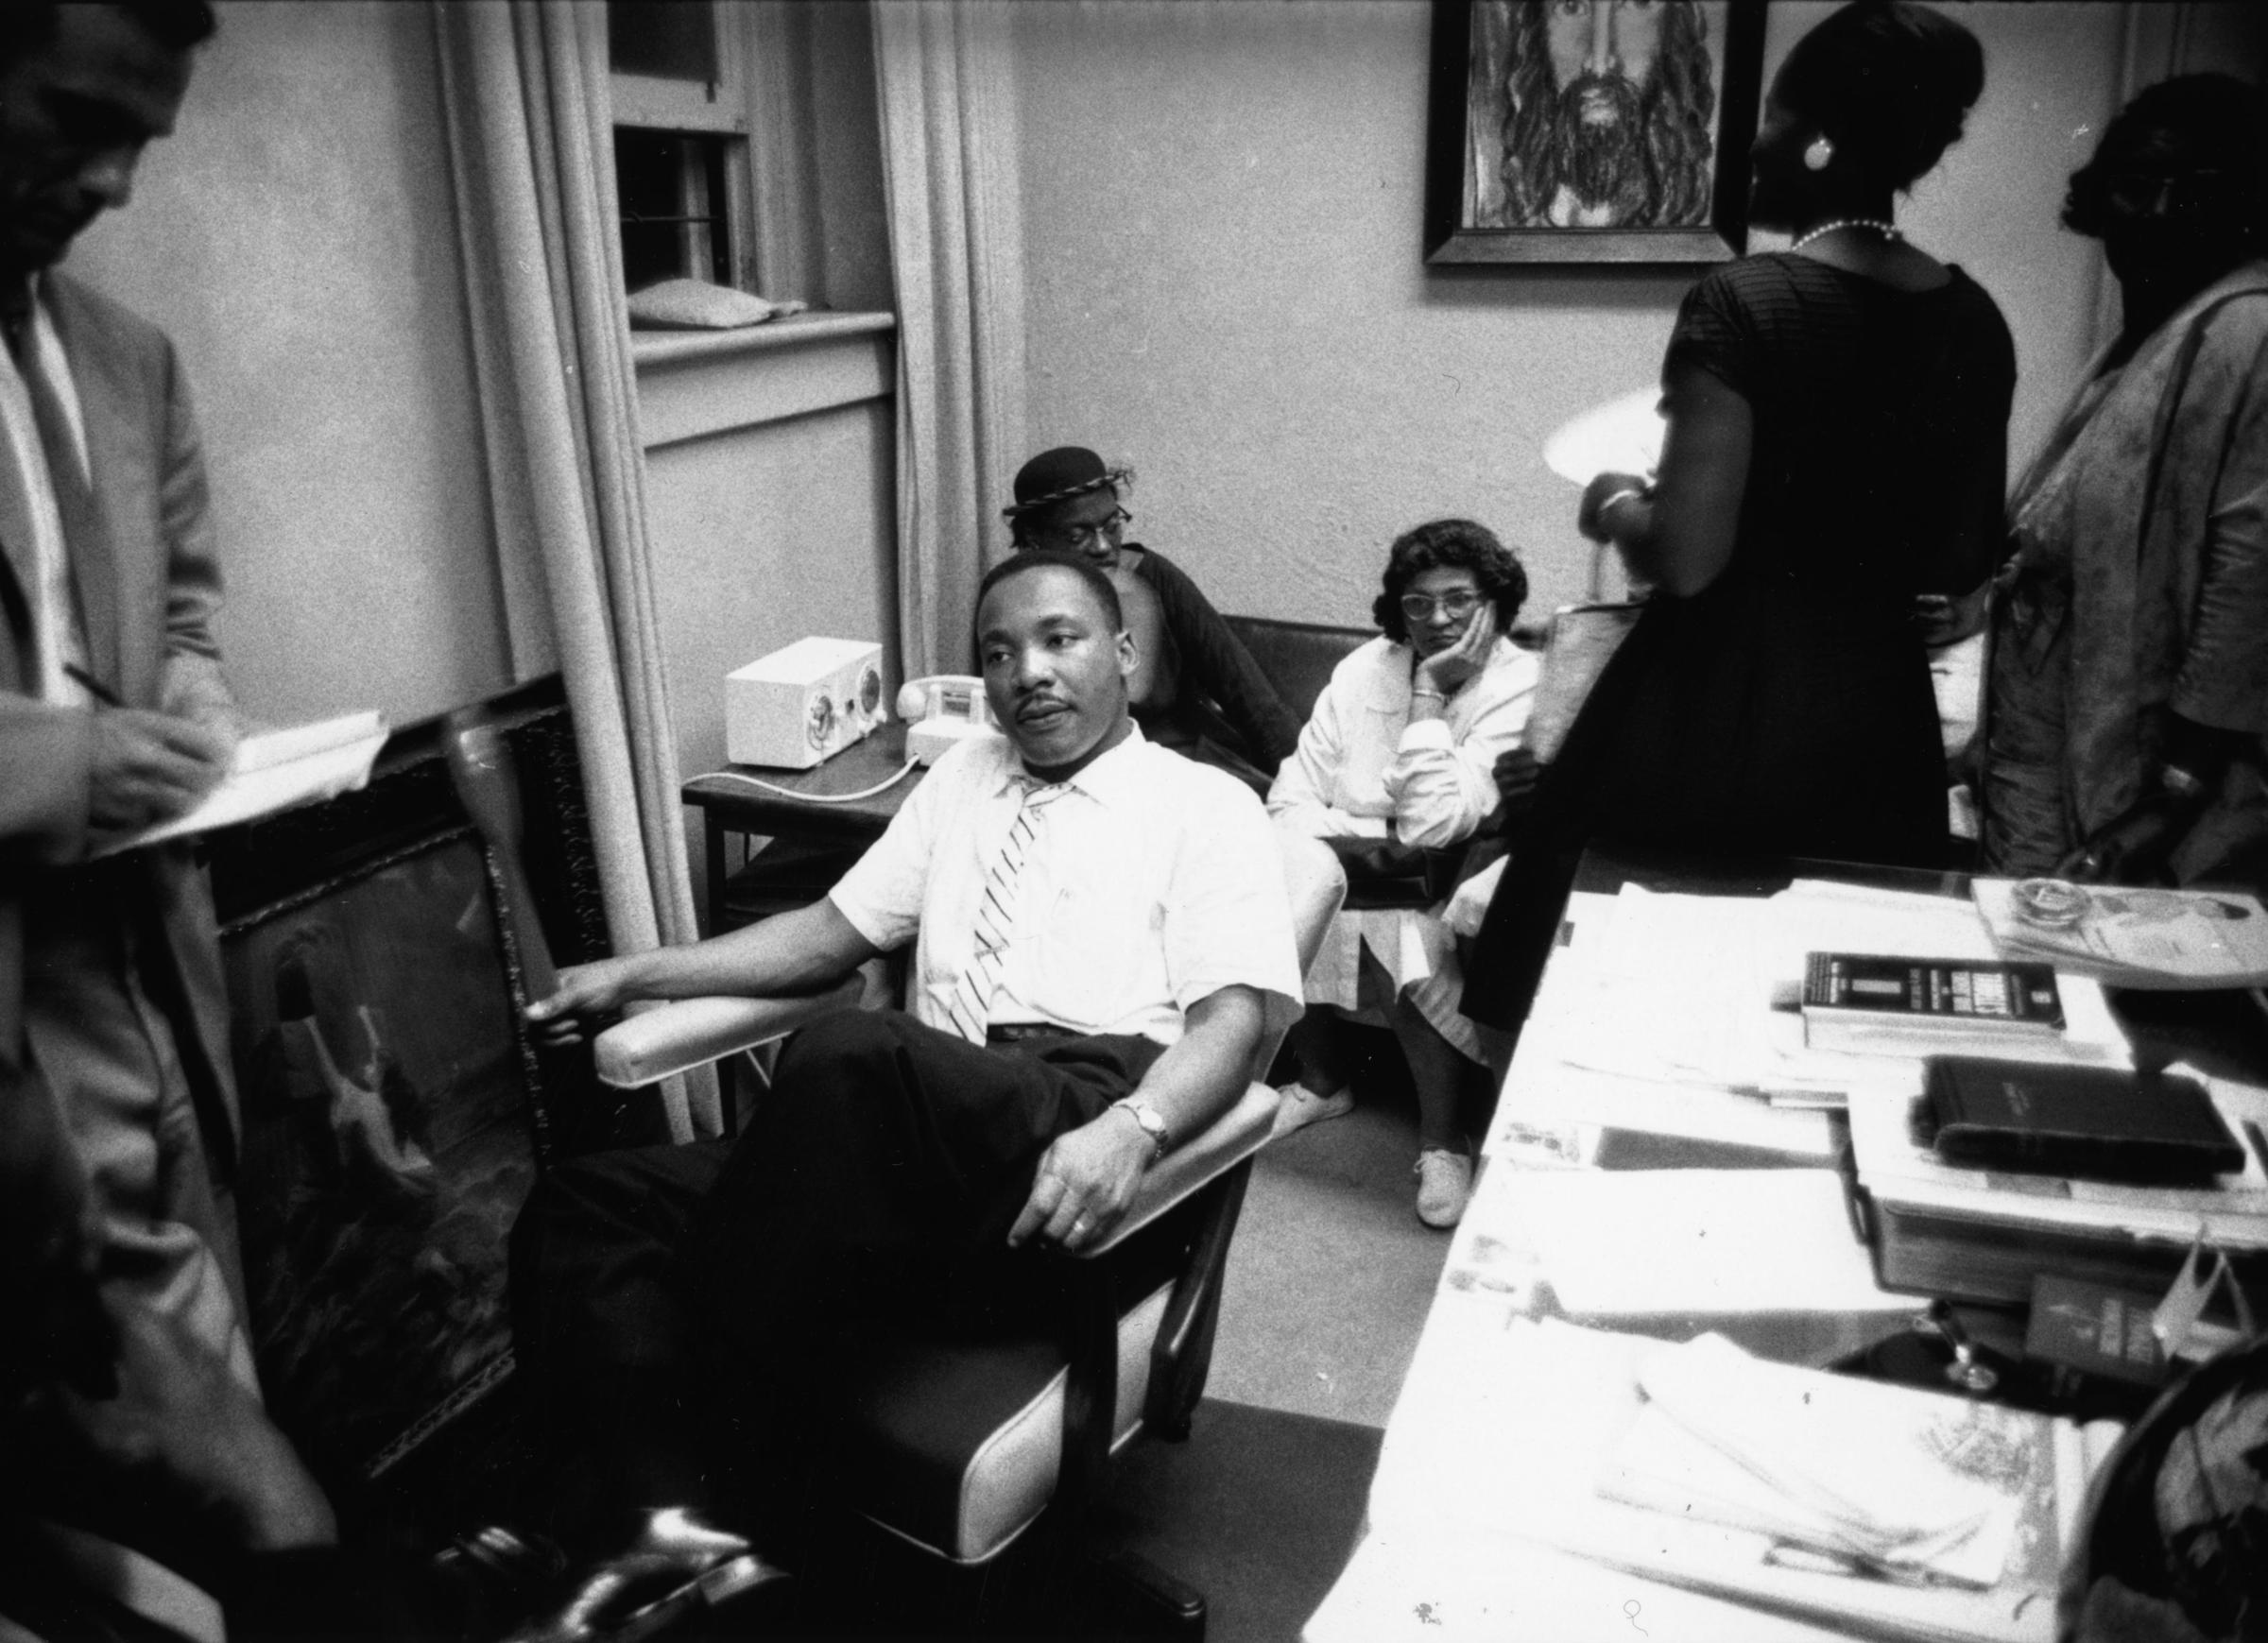 The Power Of Martin Luther King Jr.'s Anger